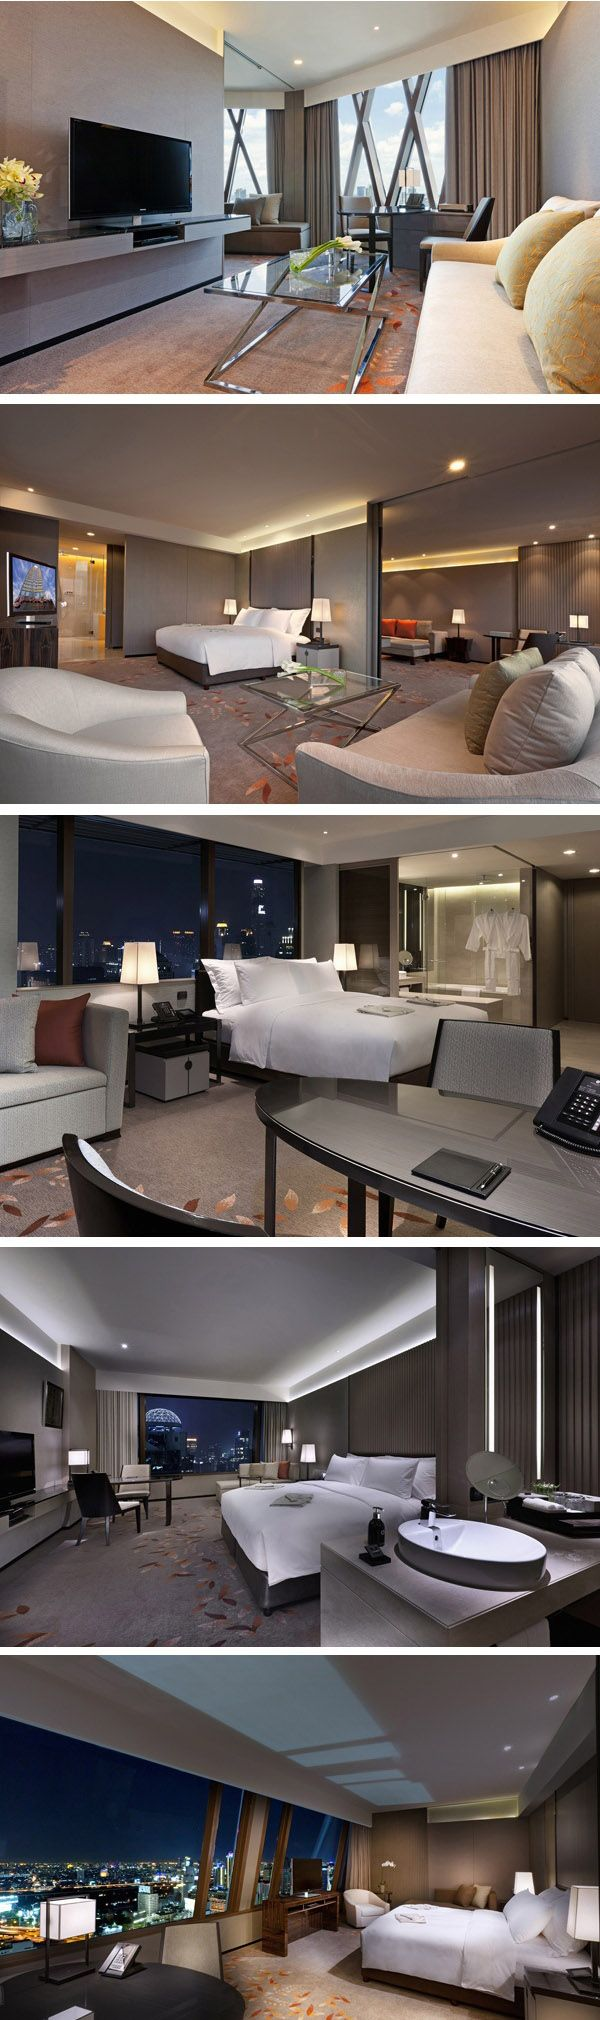 best decorating and home decorating images on pinterest home